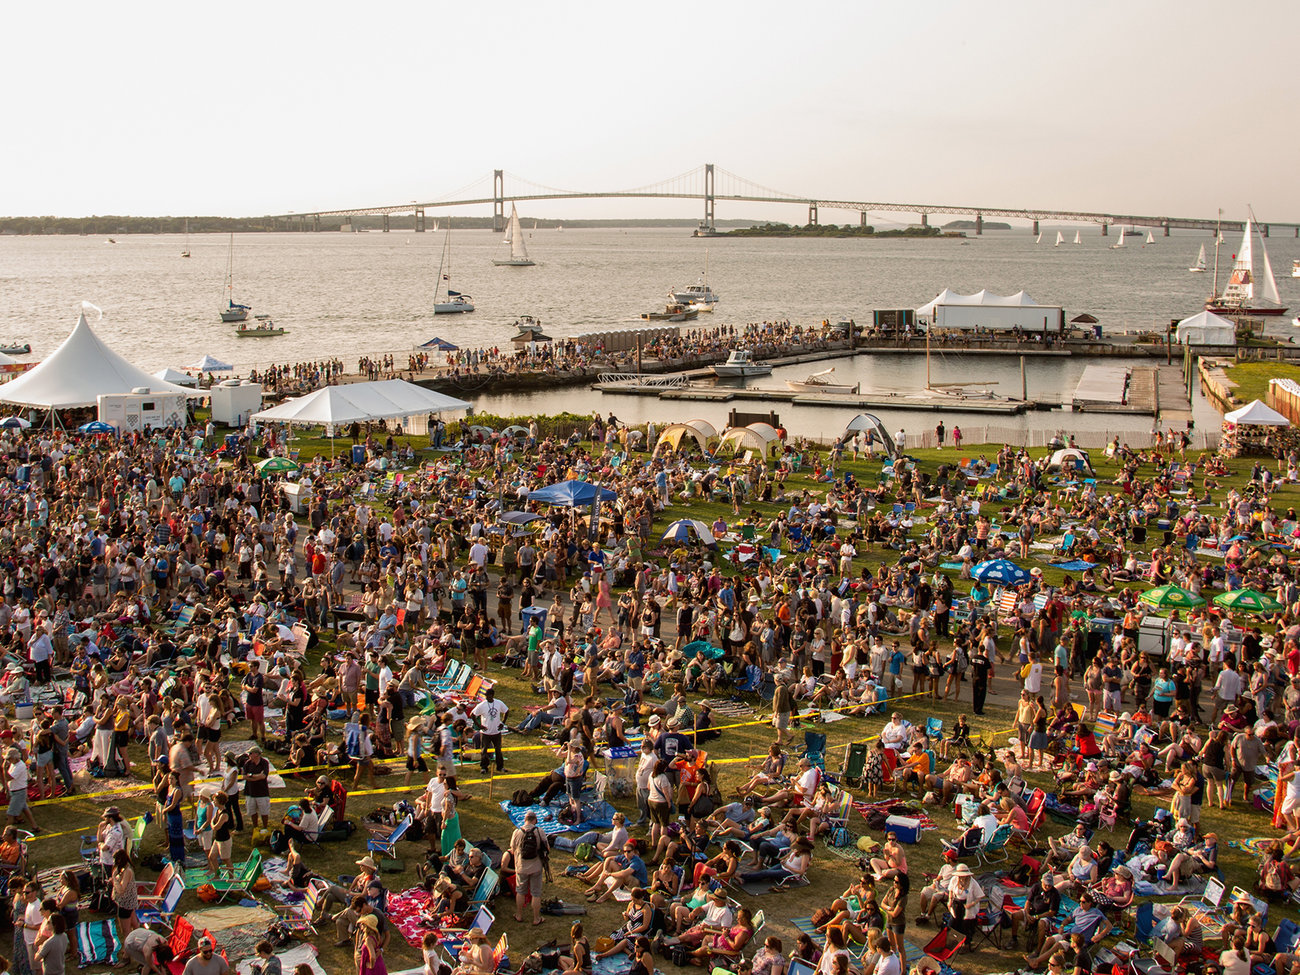 Newport Folk Festival at Fort Adams State Park in Rhode Island